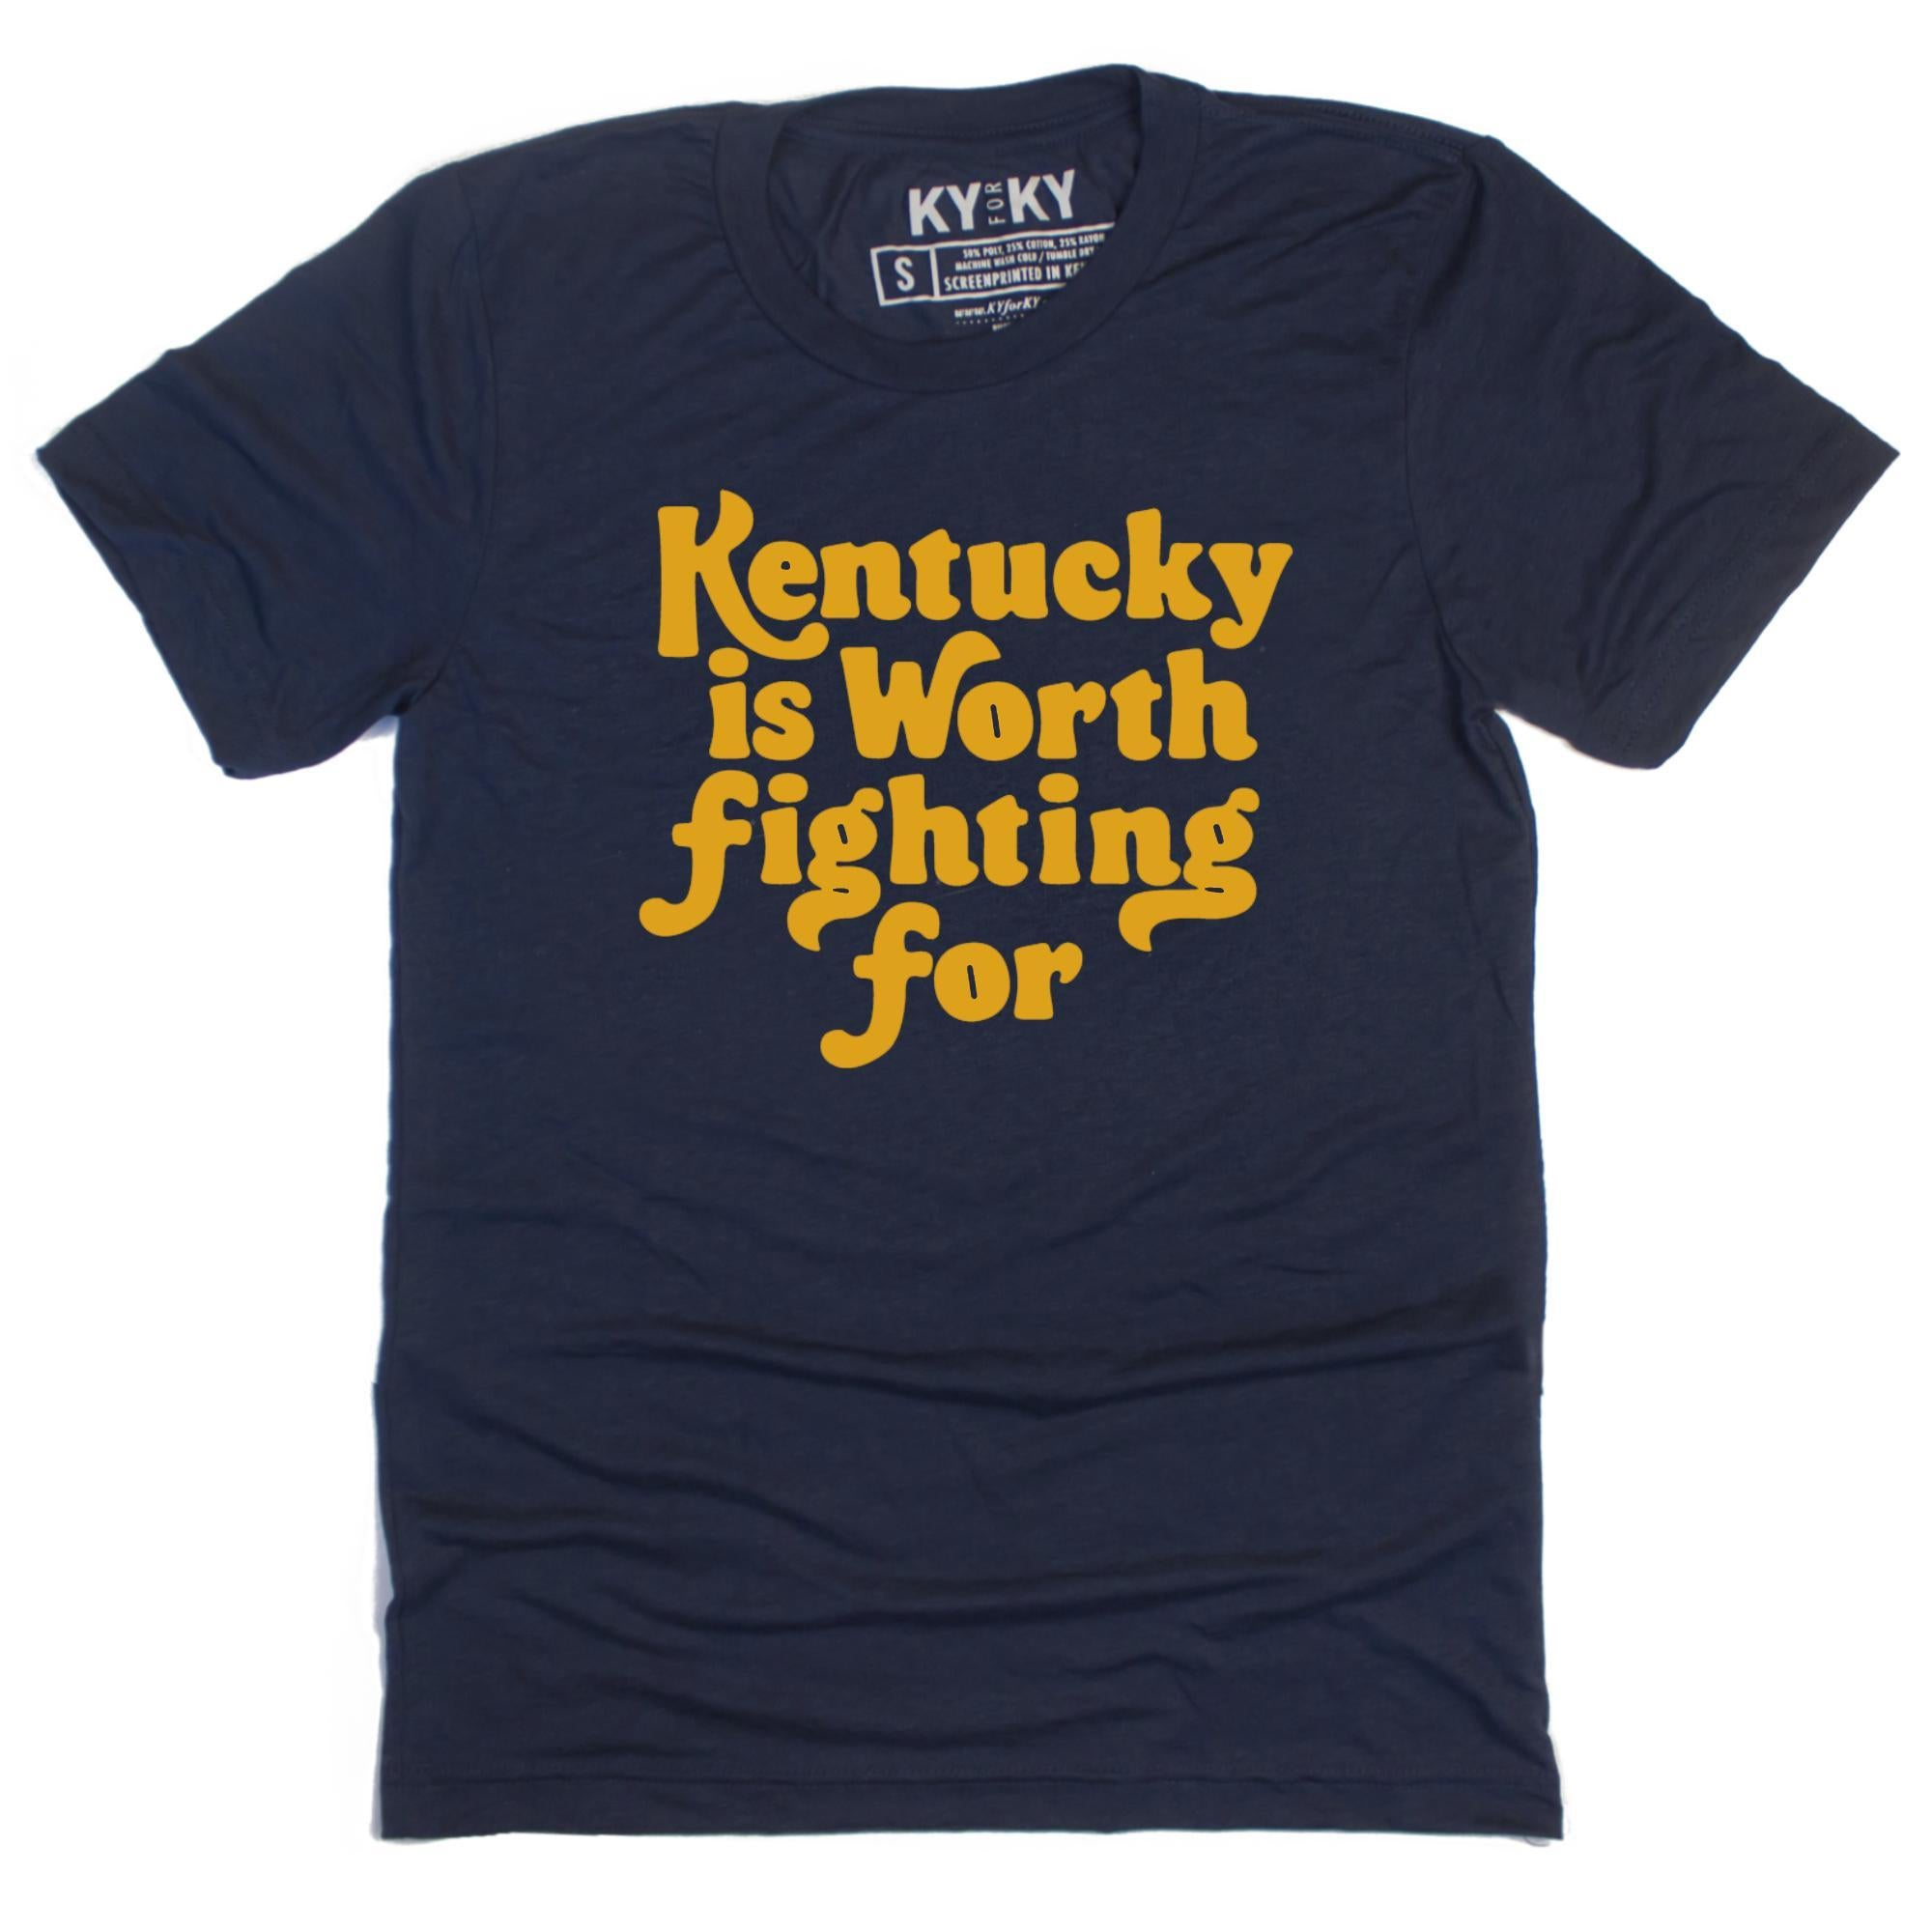 Kentucky Is Worth Fighting For T-Shirt-T-Shirt-KY for KY Store